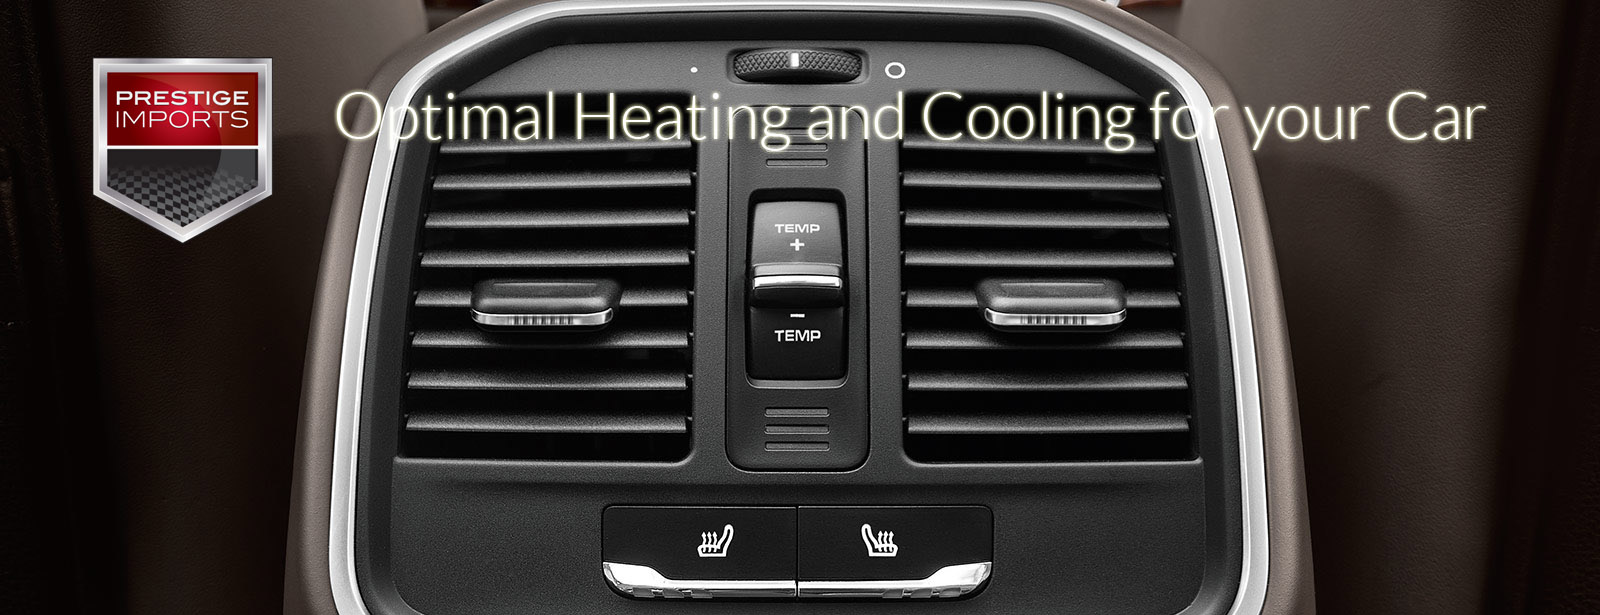 Optimal Heating and Cooling for your Car